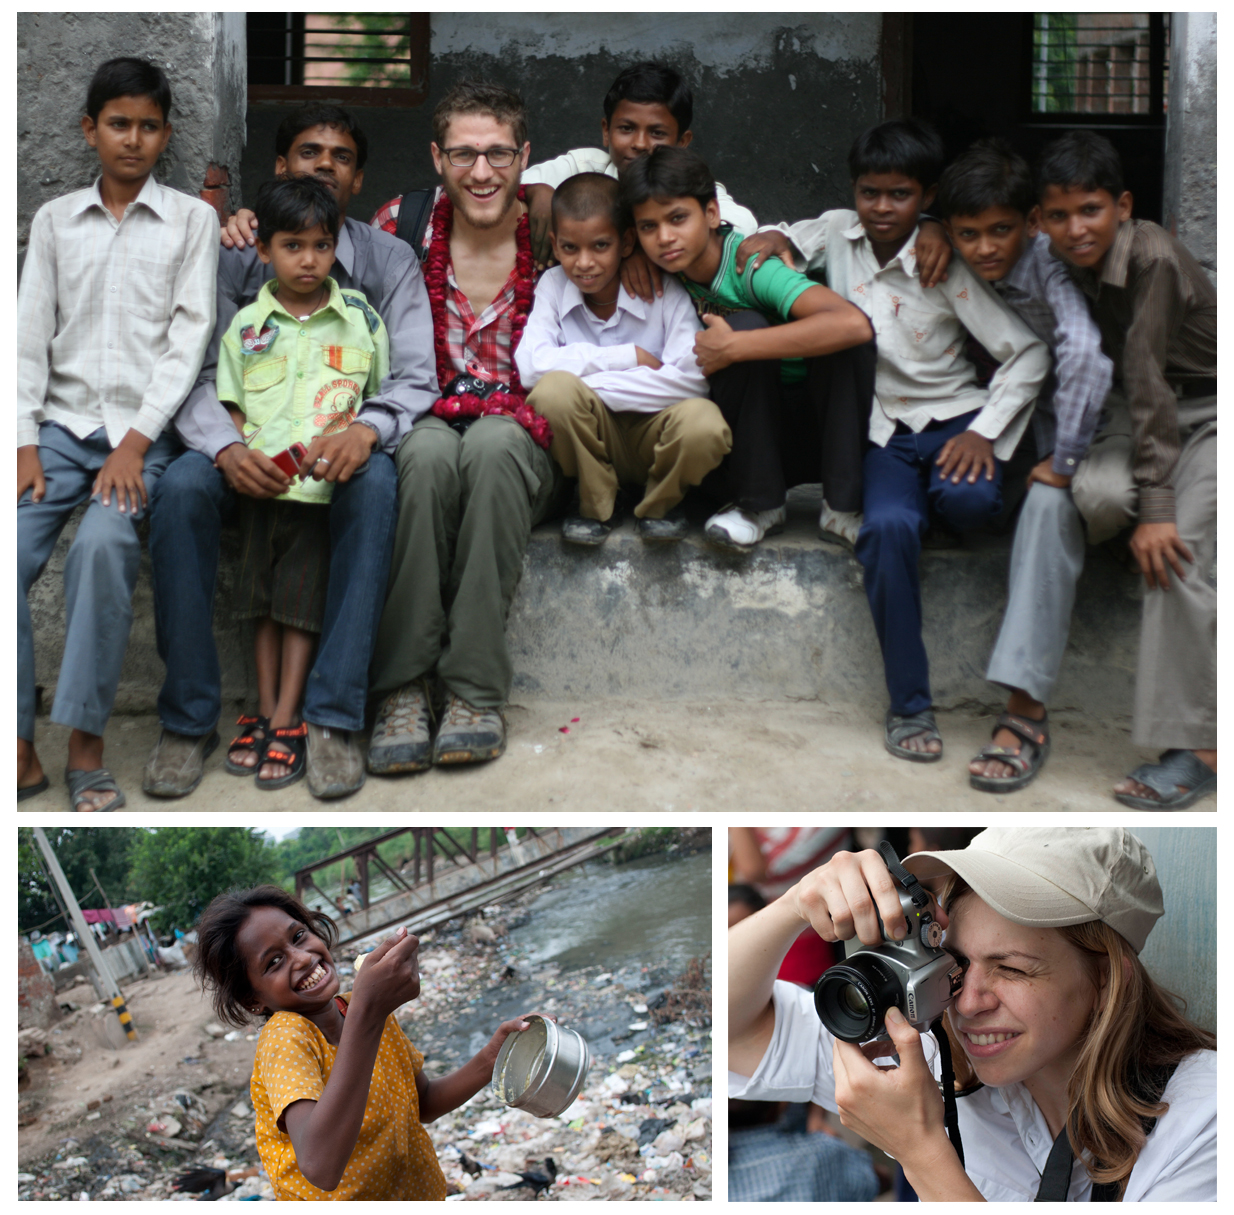 (Clockwise, from top) Matthew Masin poses with school children outside a classroom. Bethany Trueblood composes a photo at a school outside of Lucknow. A young girl eats her lunch in a Delhi slum. Photos by Matthew Masin.